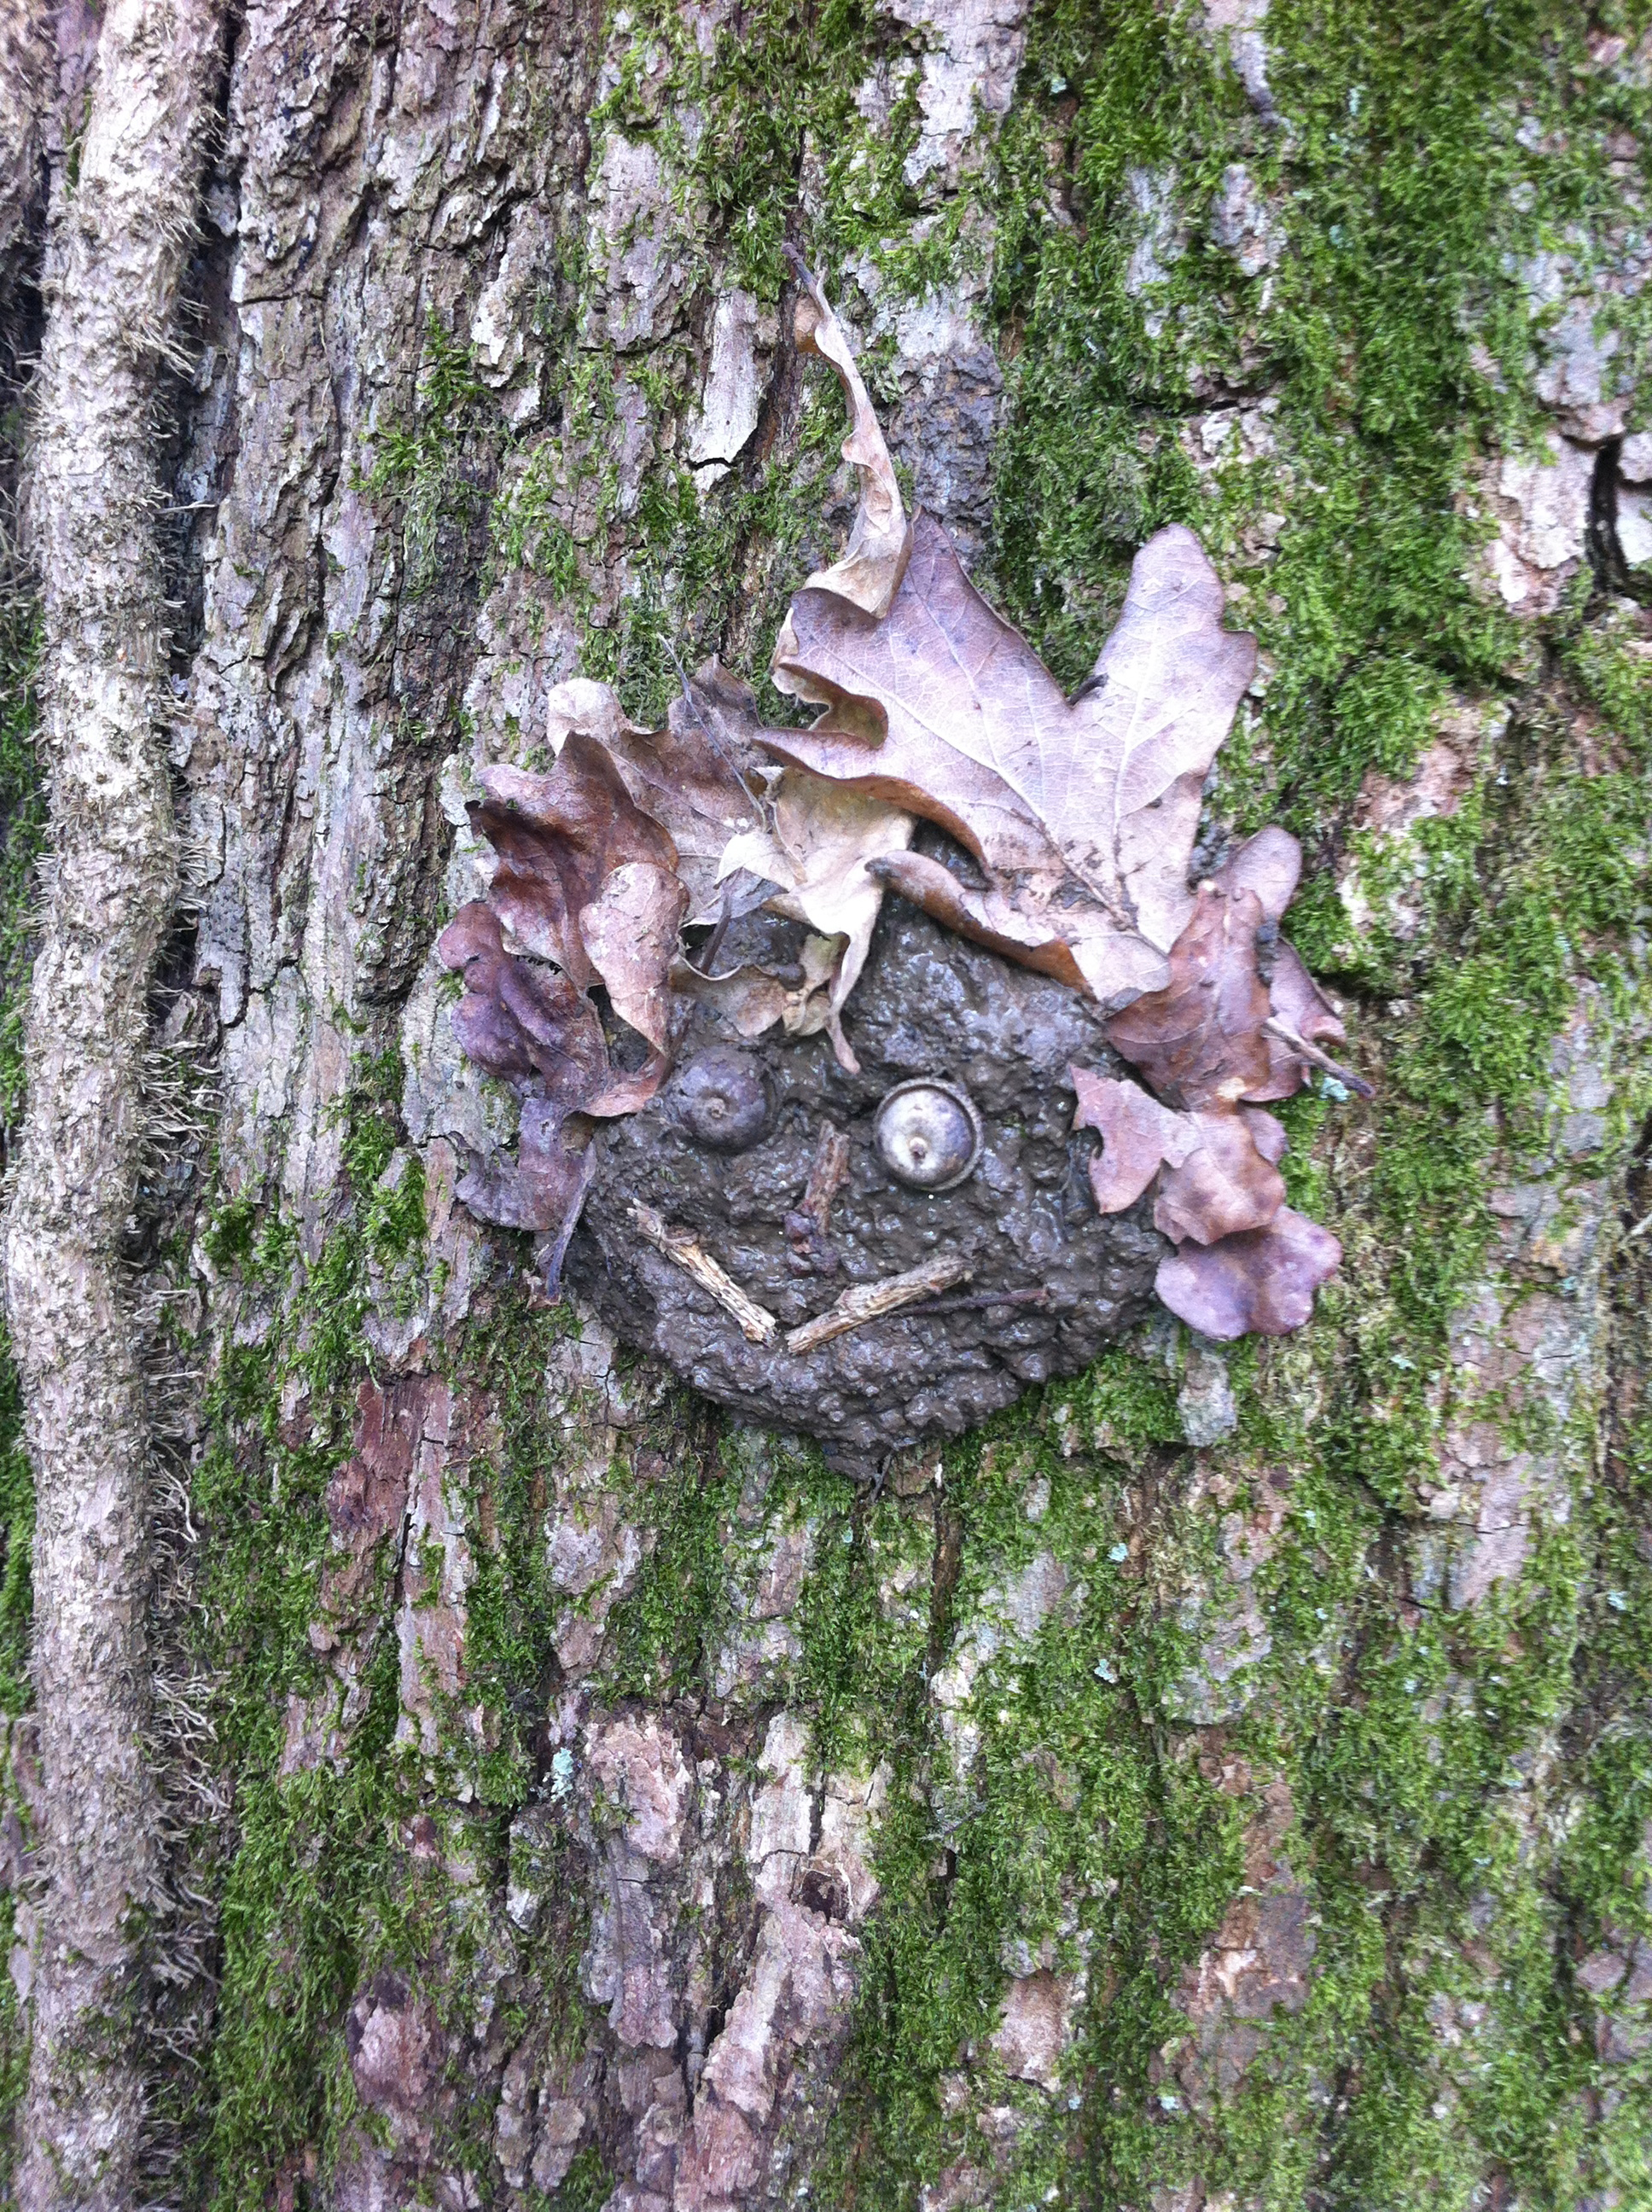 Forest-school smily face made from tree bark and leaves